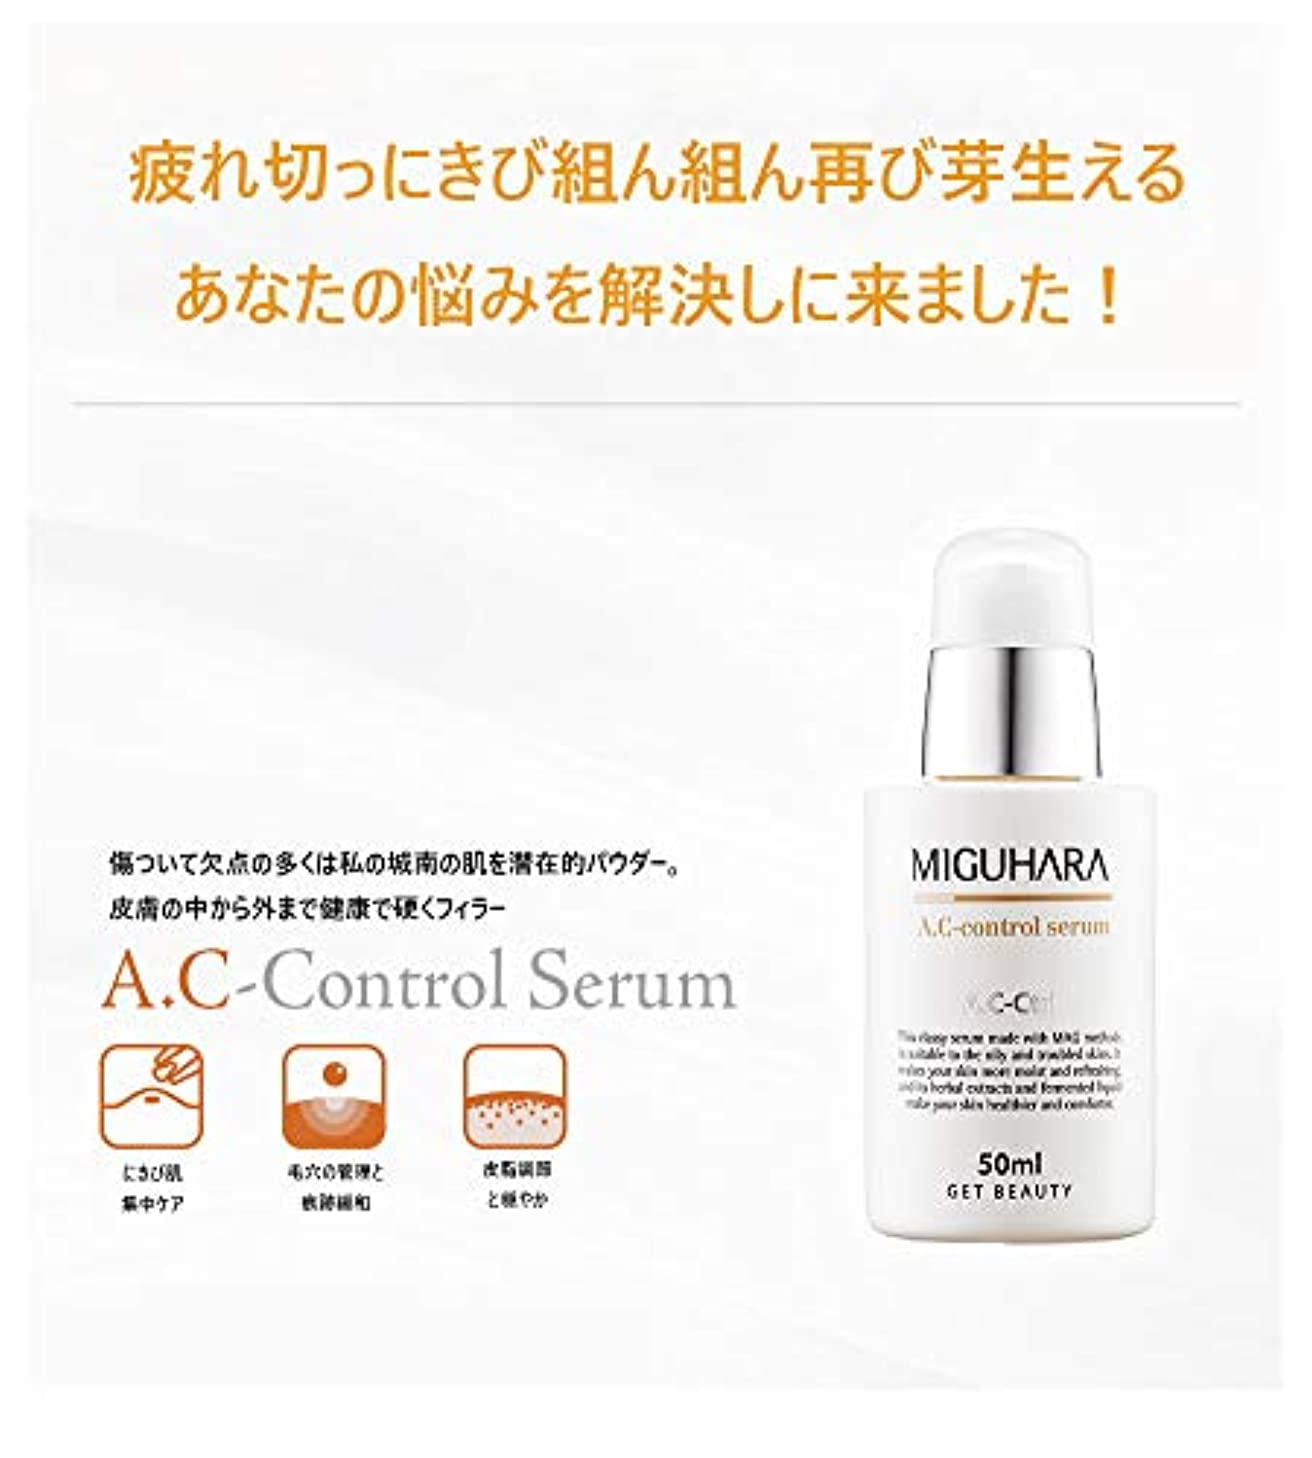 シュガーハッピーリンスMIGUHARA A.C-control Serum 50ml